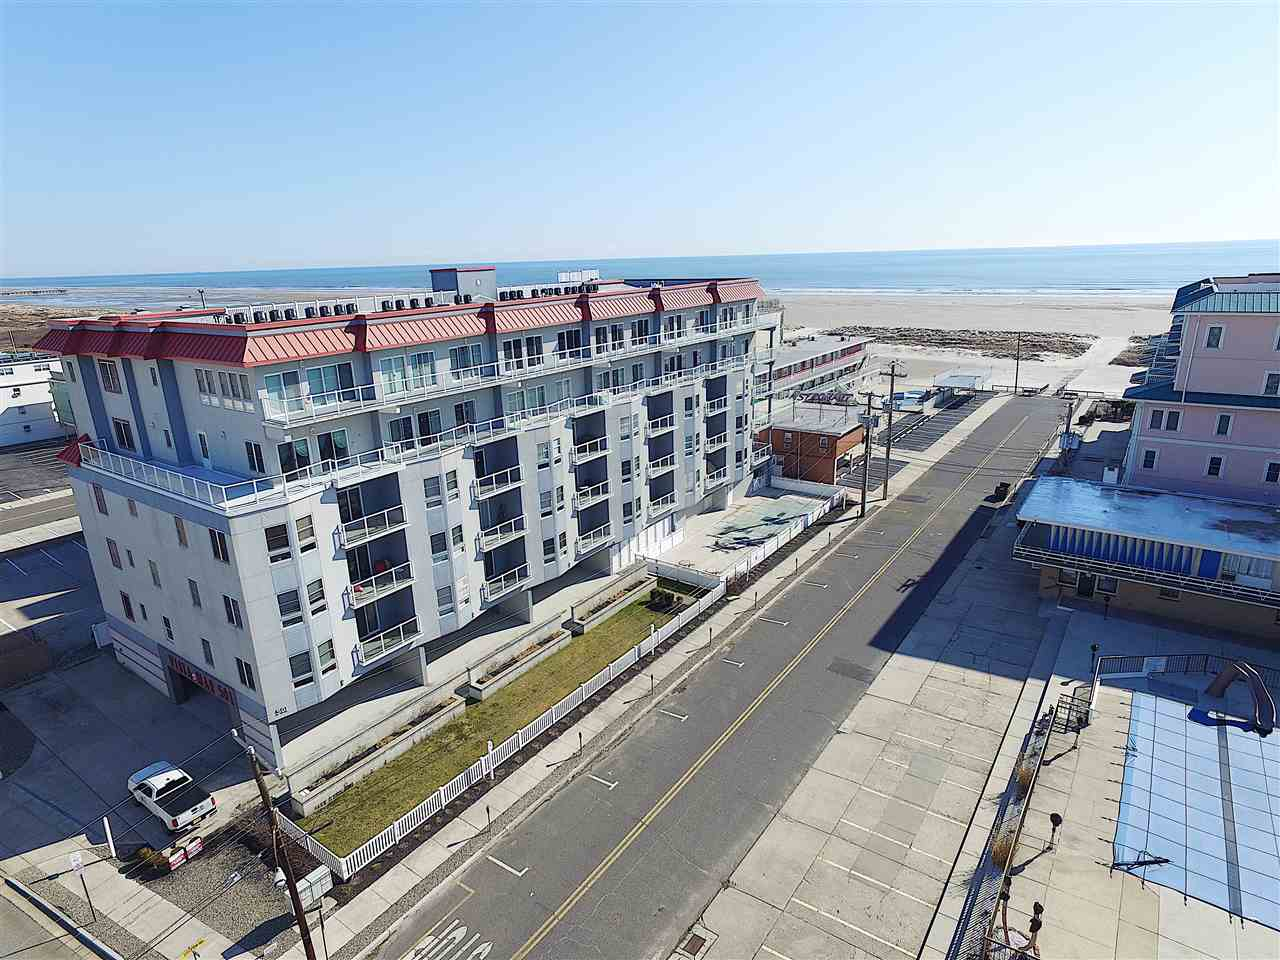 501, Unit #106 Stockton, Wildwood Crest